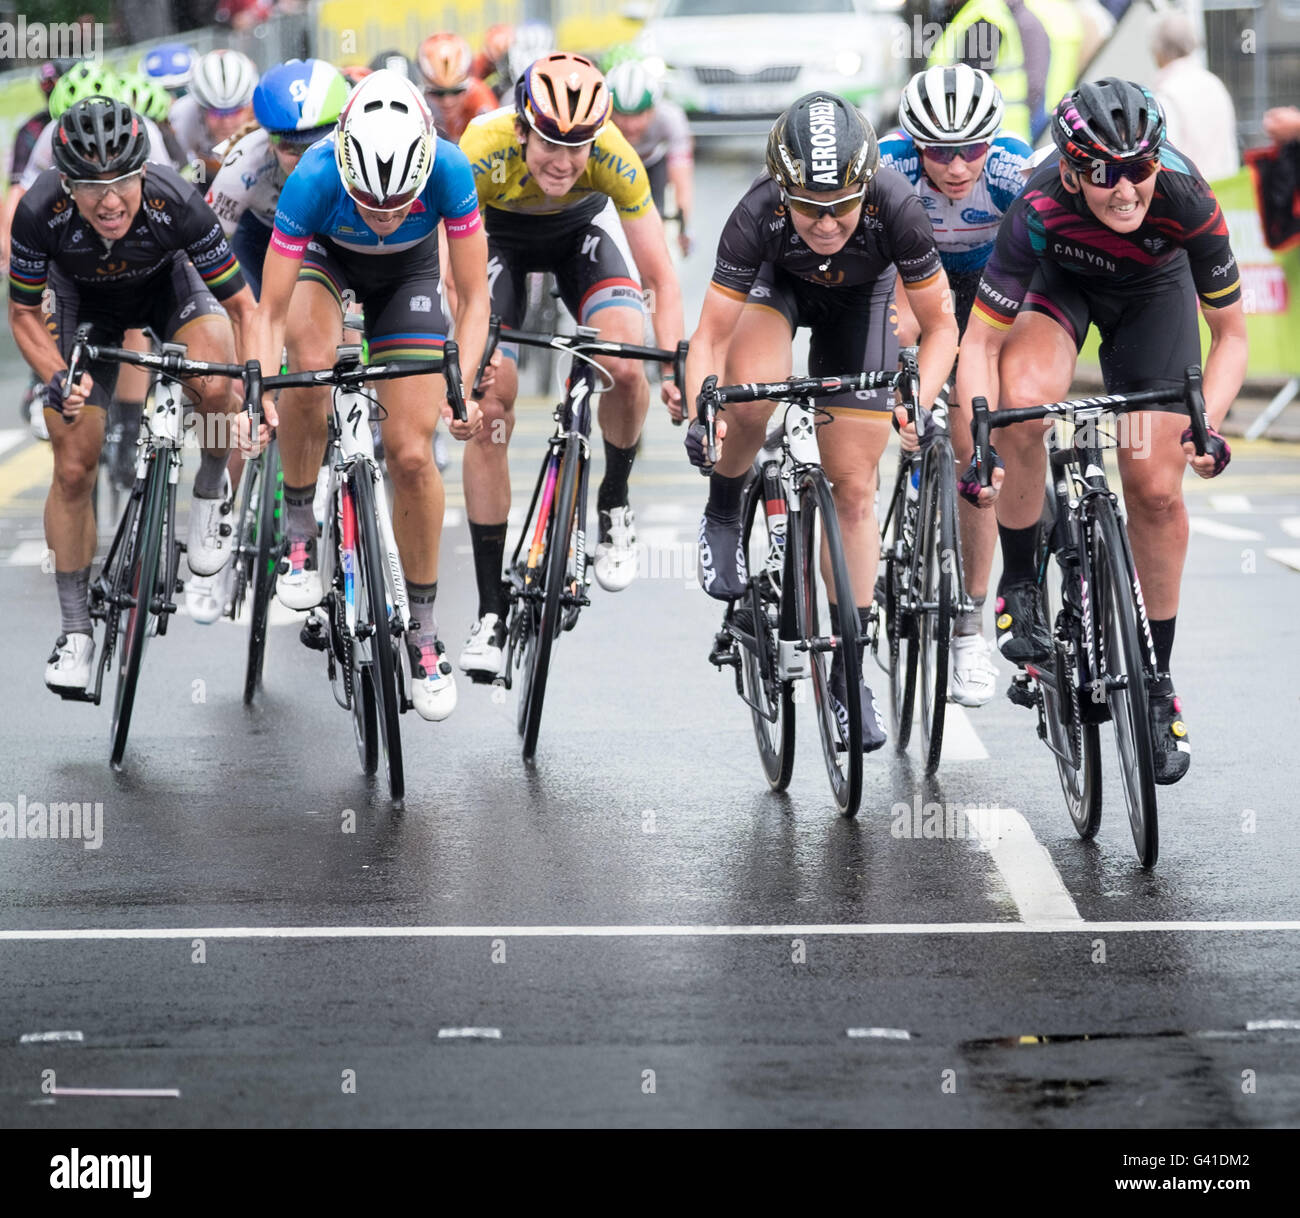 riders-sprint-for-the-finish-line-at-the